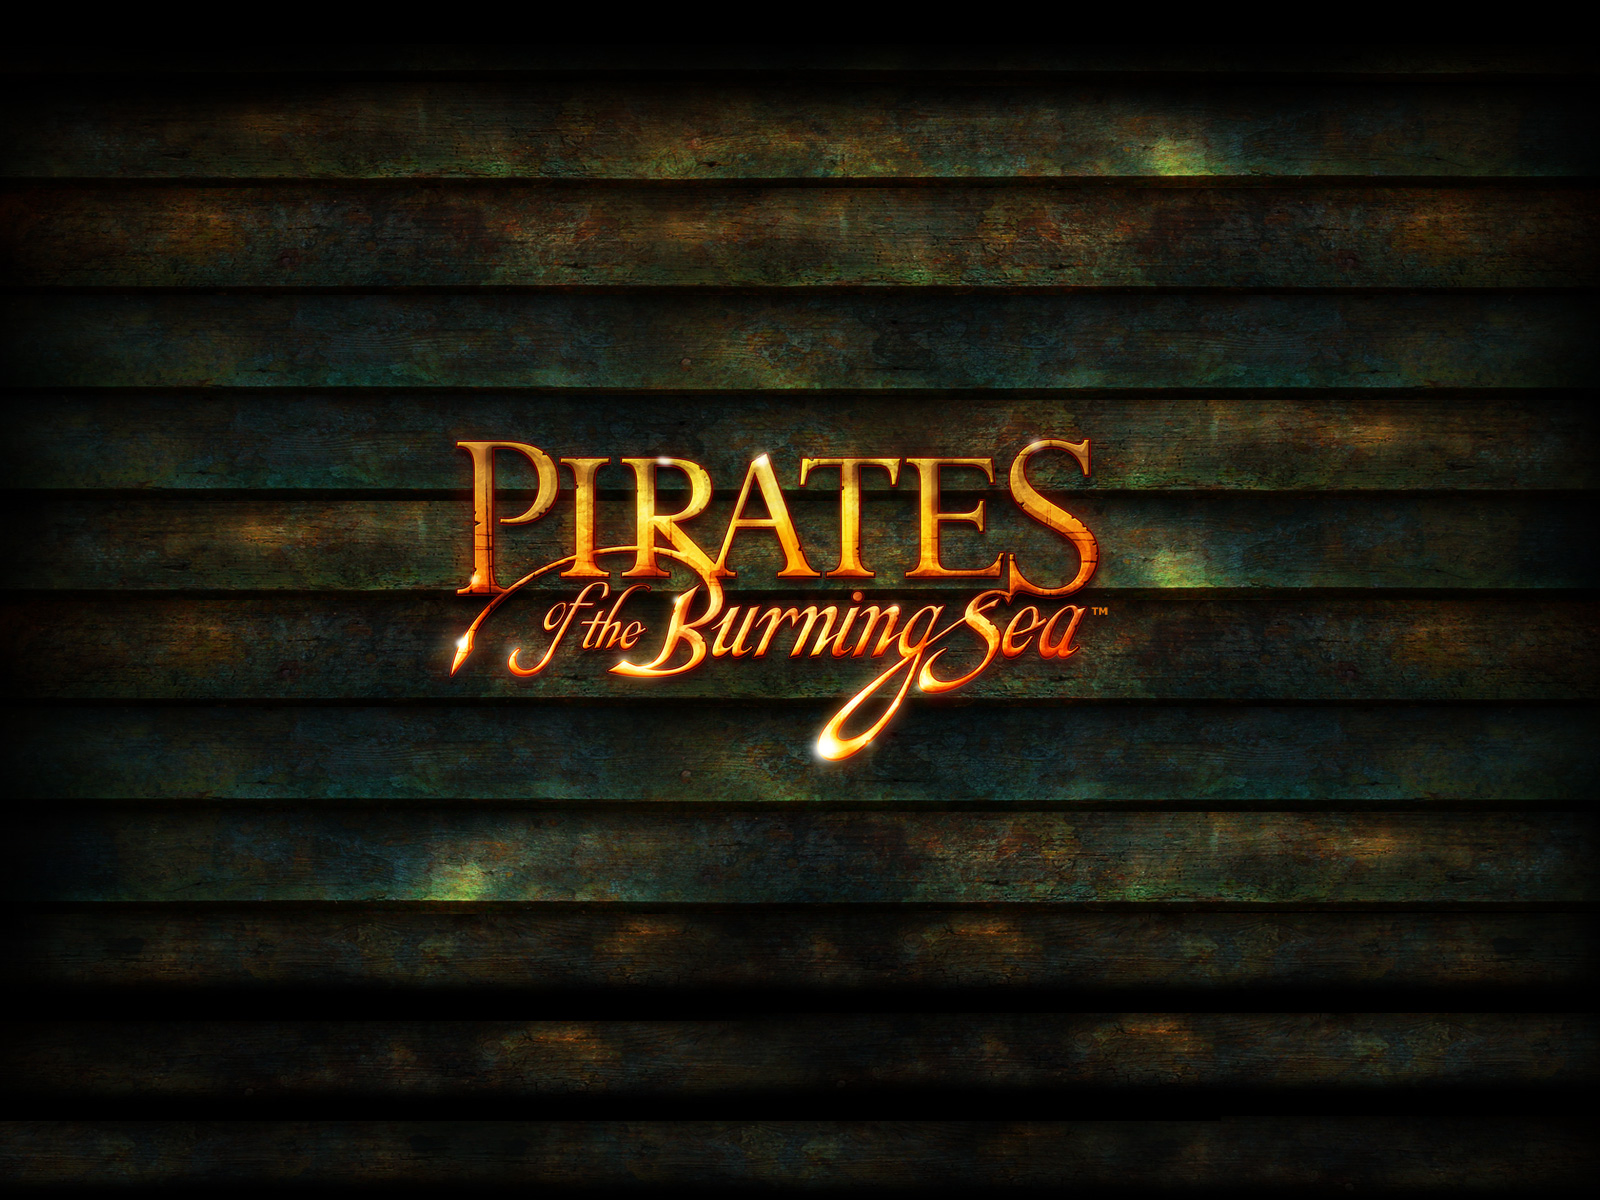 Pirates_of_the_burning_sea_01_1600x1200.jpg